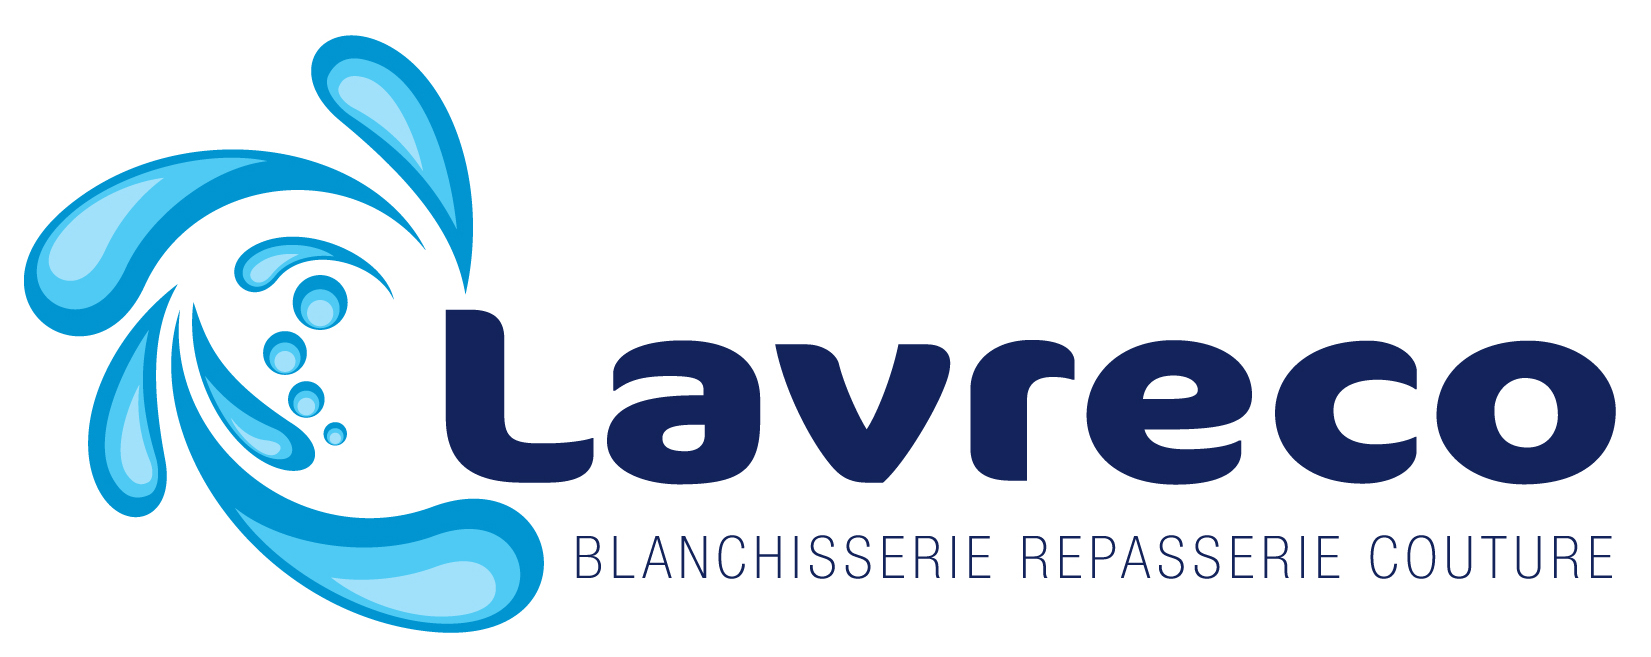 lavreco blanchisserie